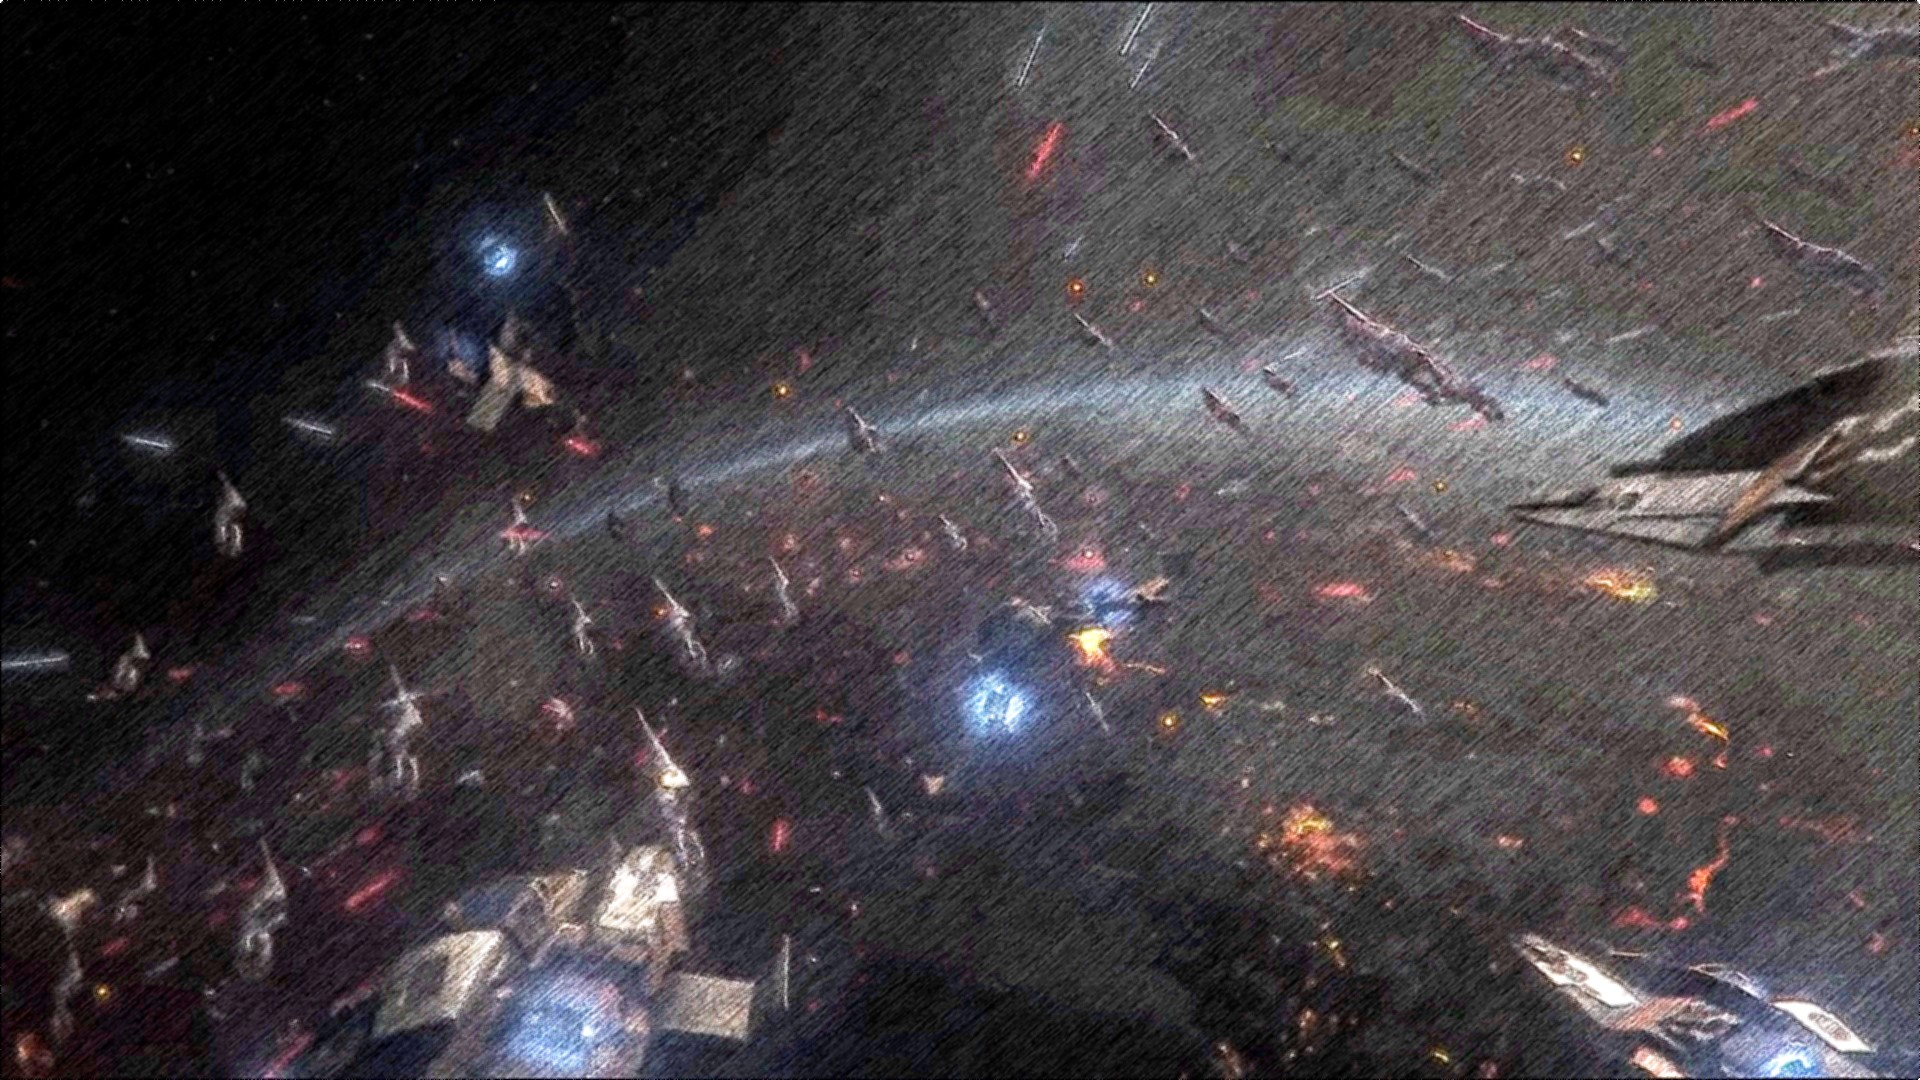 Halo Space Battle Wallpaper Images Pictures   Becuo 1920x1080